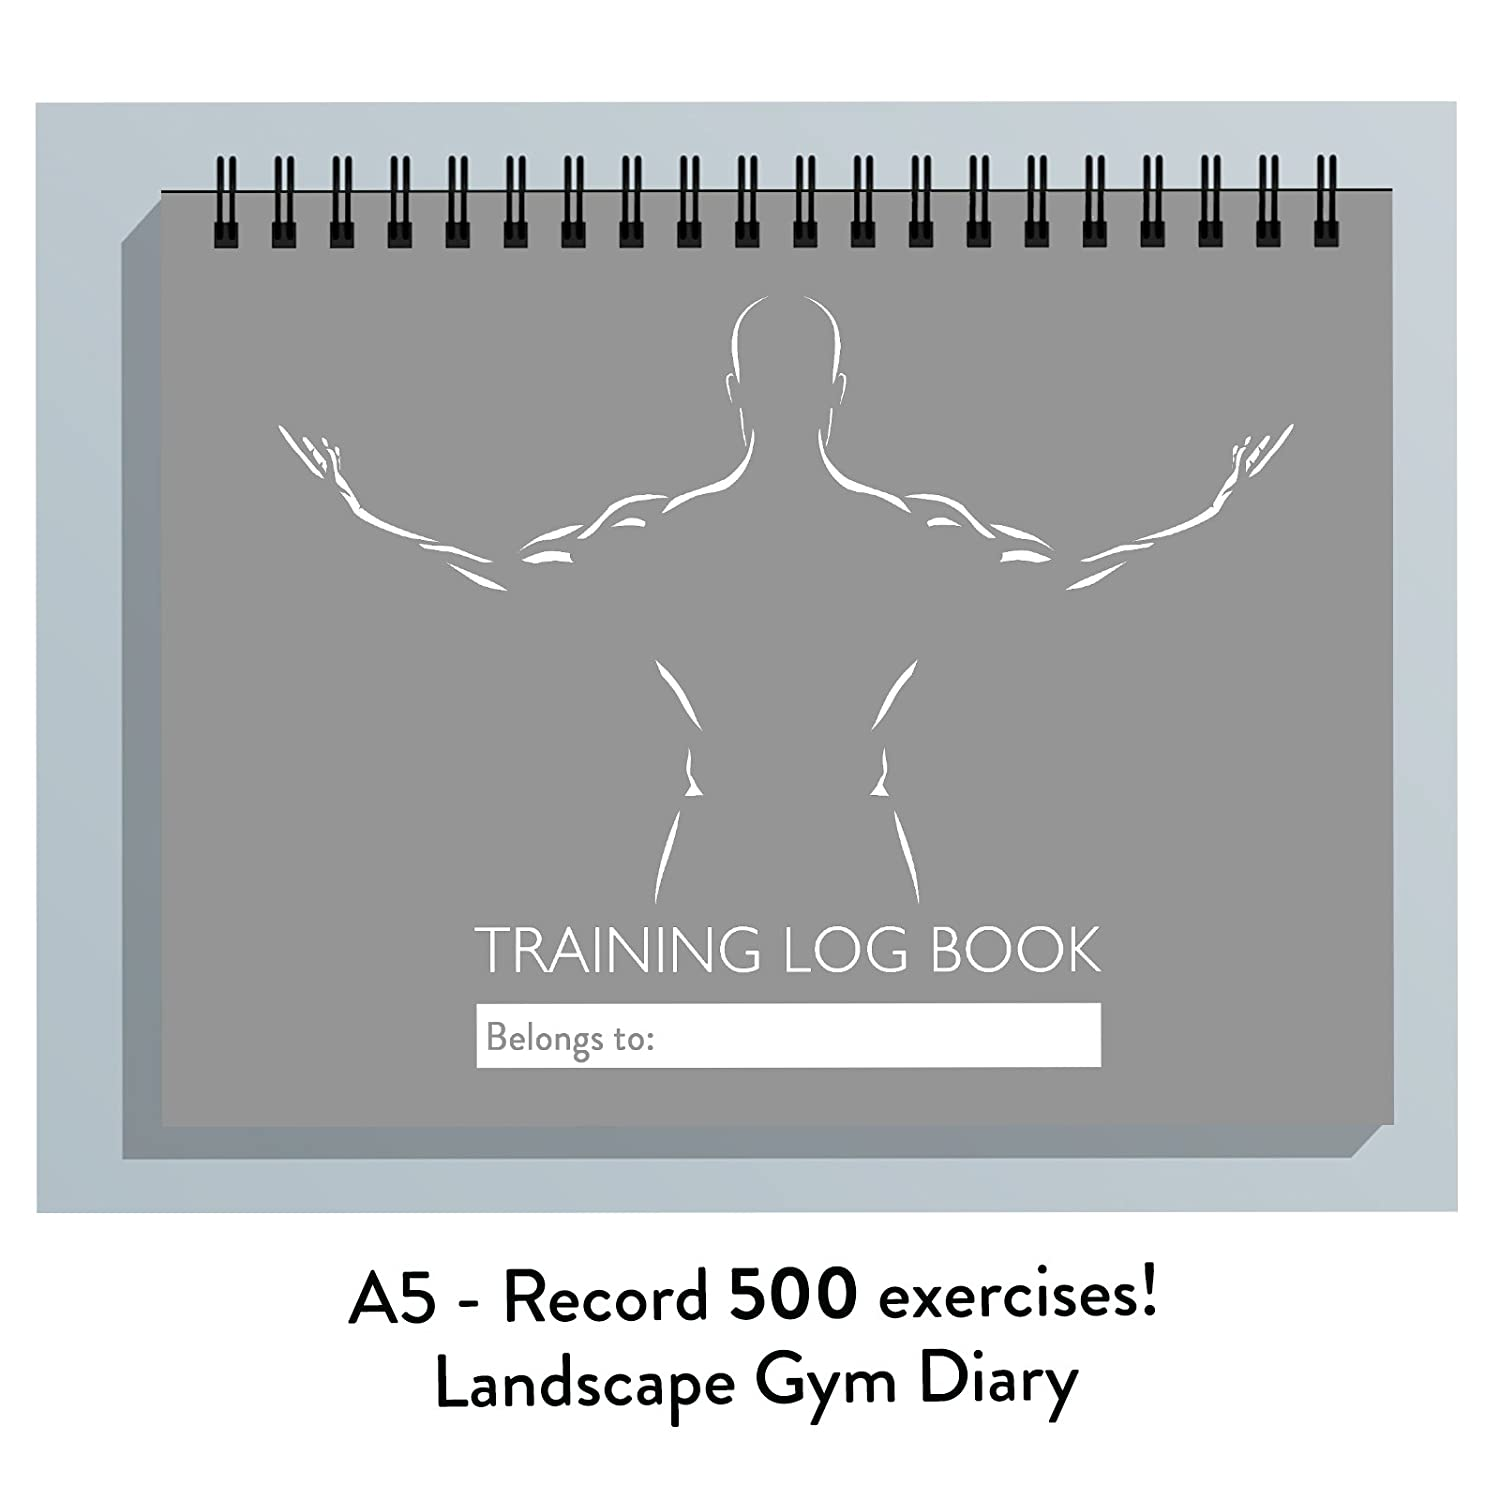 LADIES MEN GYM TRAINING DIARY, 25 PAGED EXERCISE JOURNAL, LOG BOOK,REPS, WEIGHTS (GREY) The Calorie Club